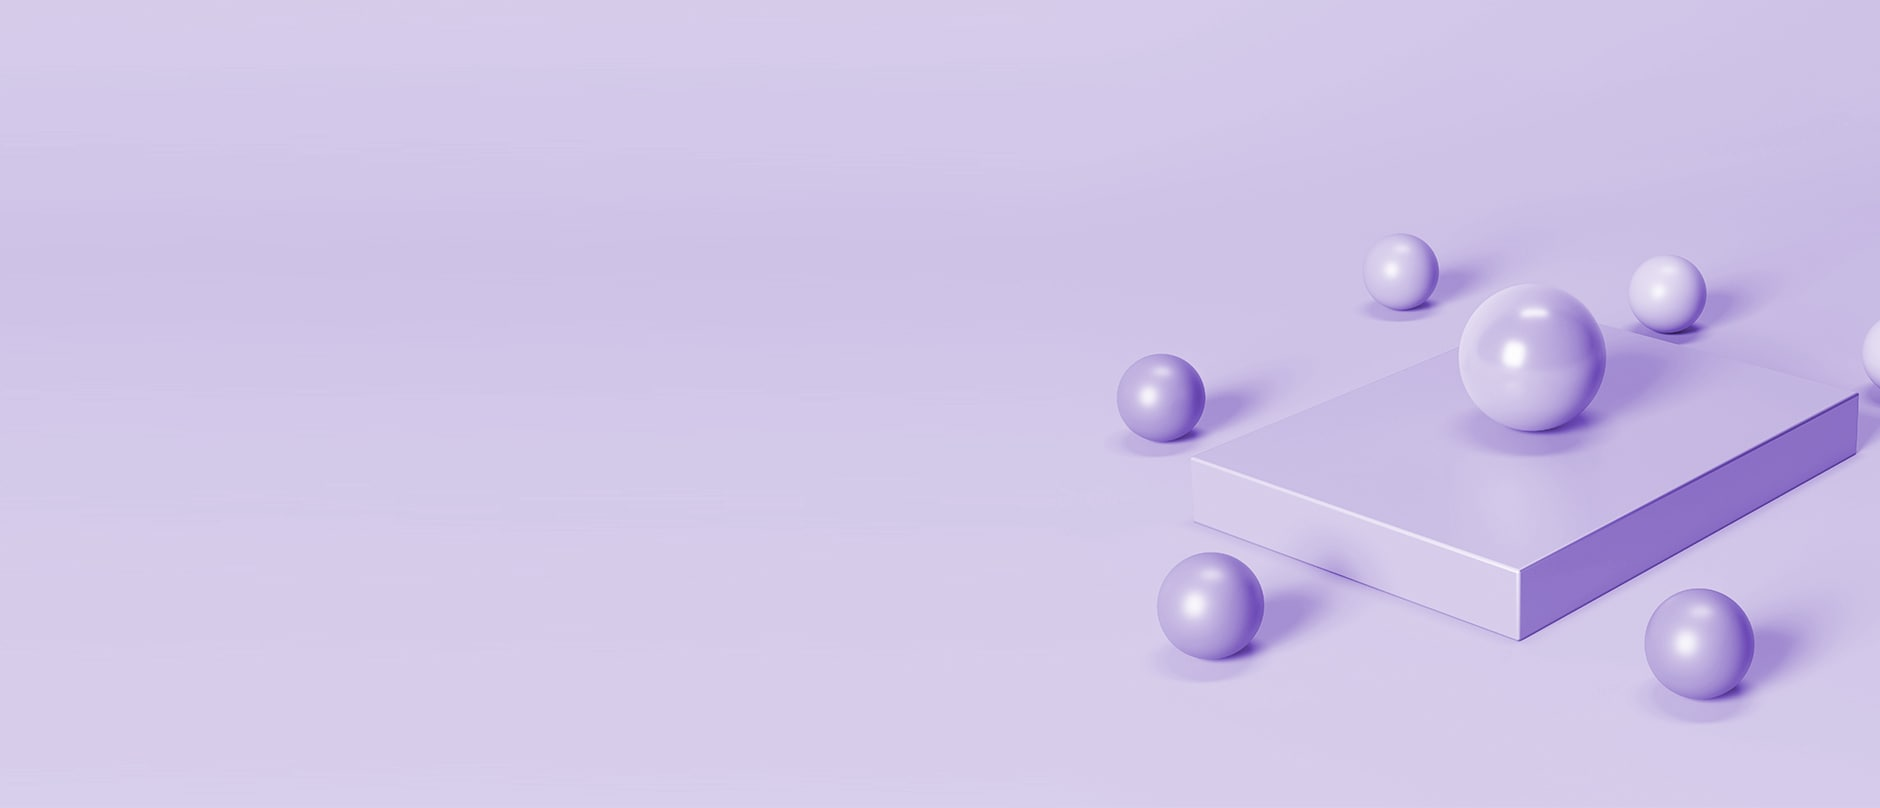 light purple abstract images